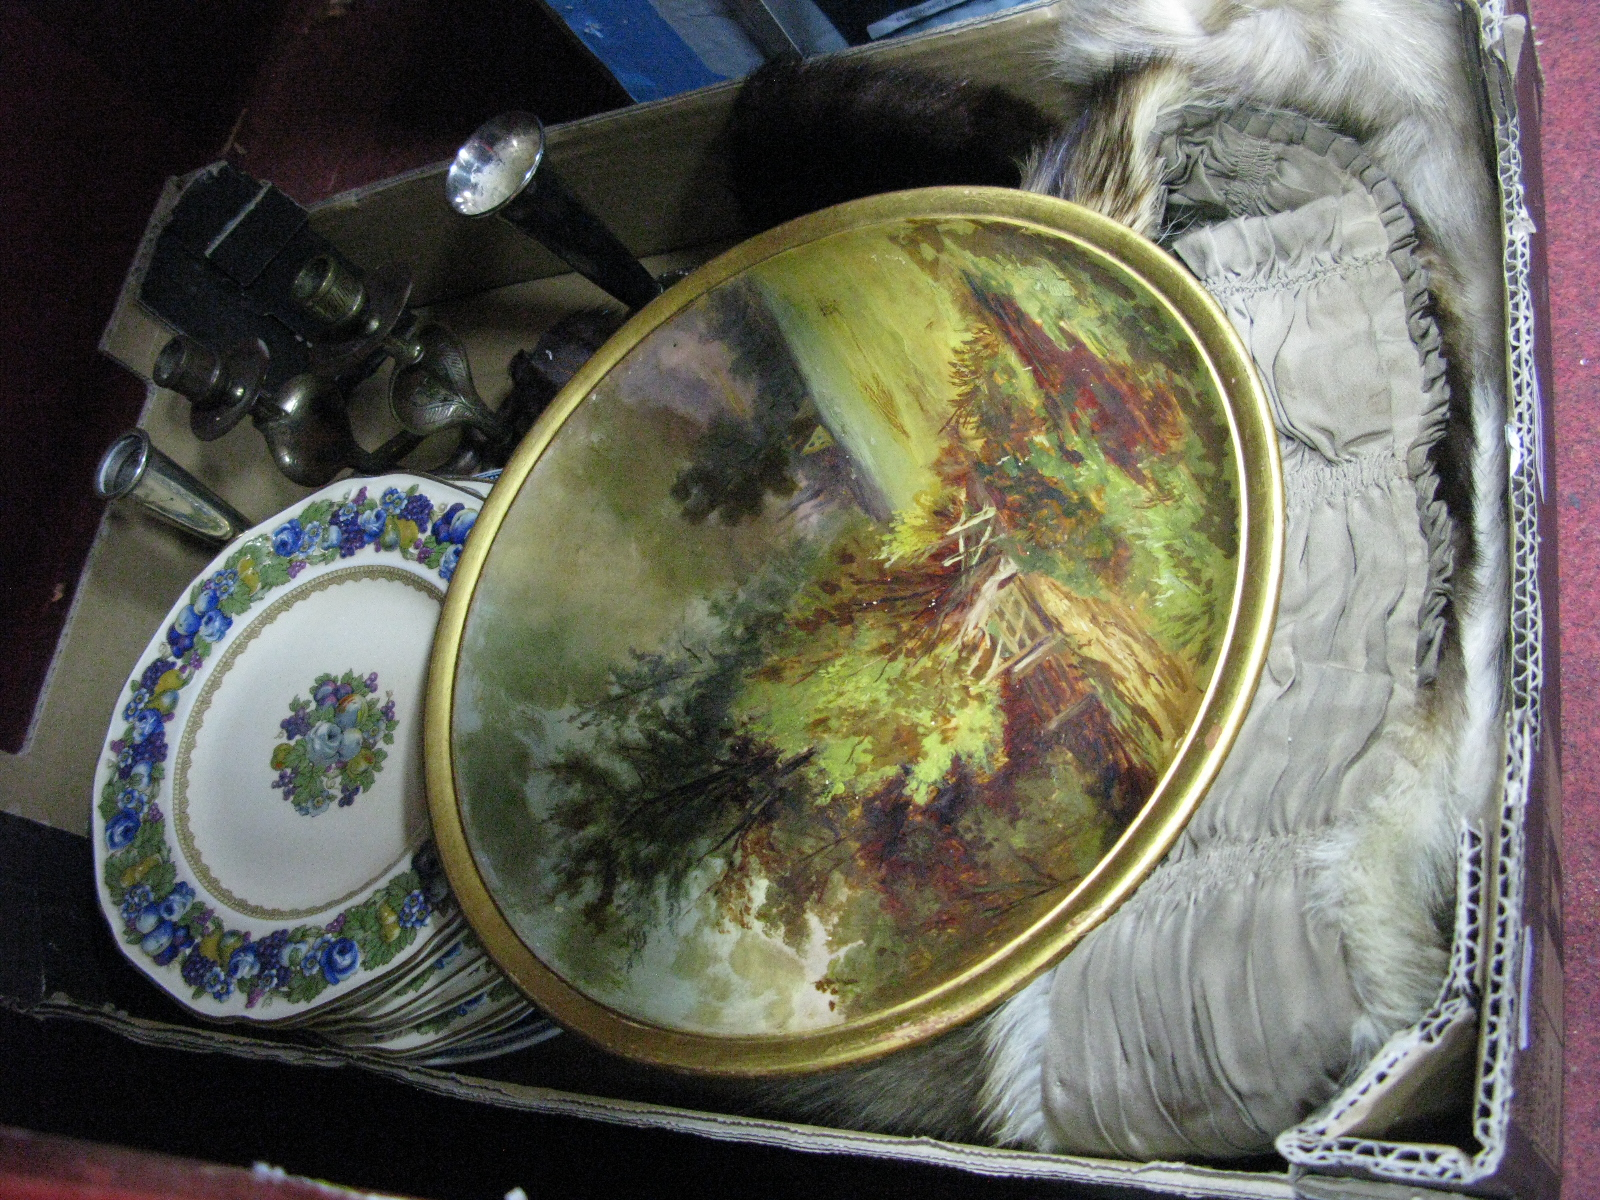 Lot 1040 - Crown Ducal Plates, with raised floral decoration, fur stoles, painted cabinet plate with country